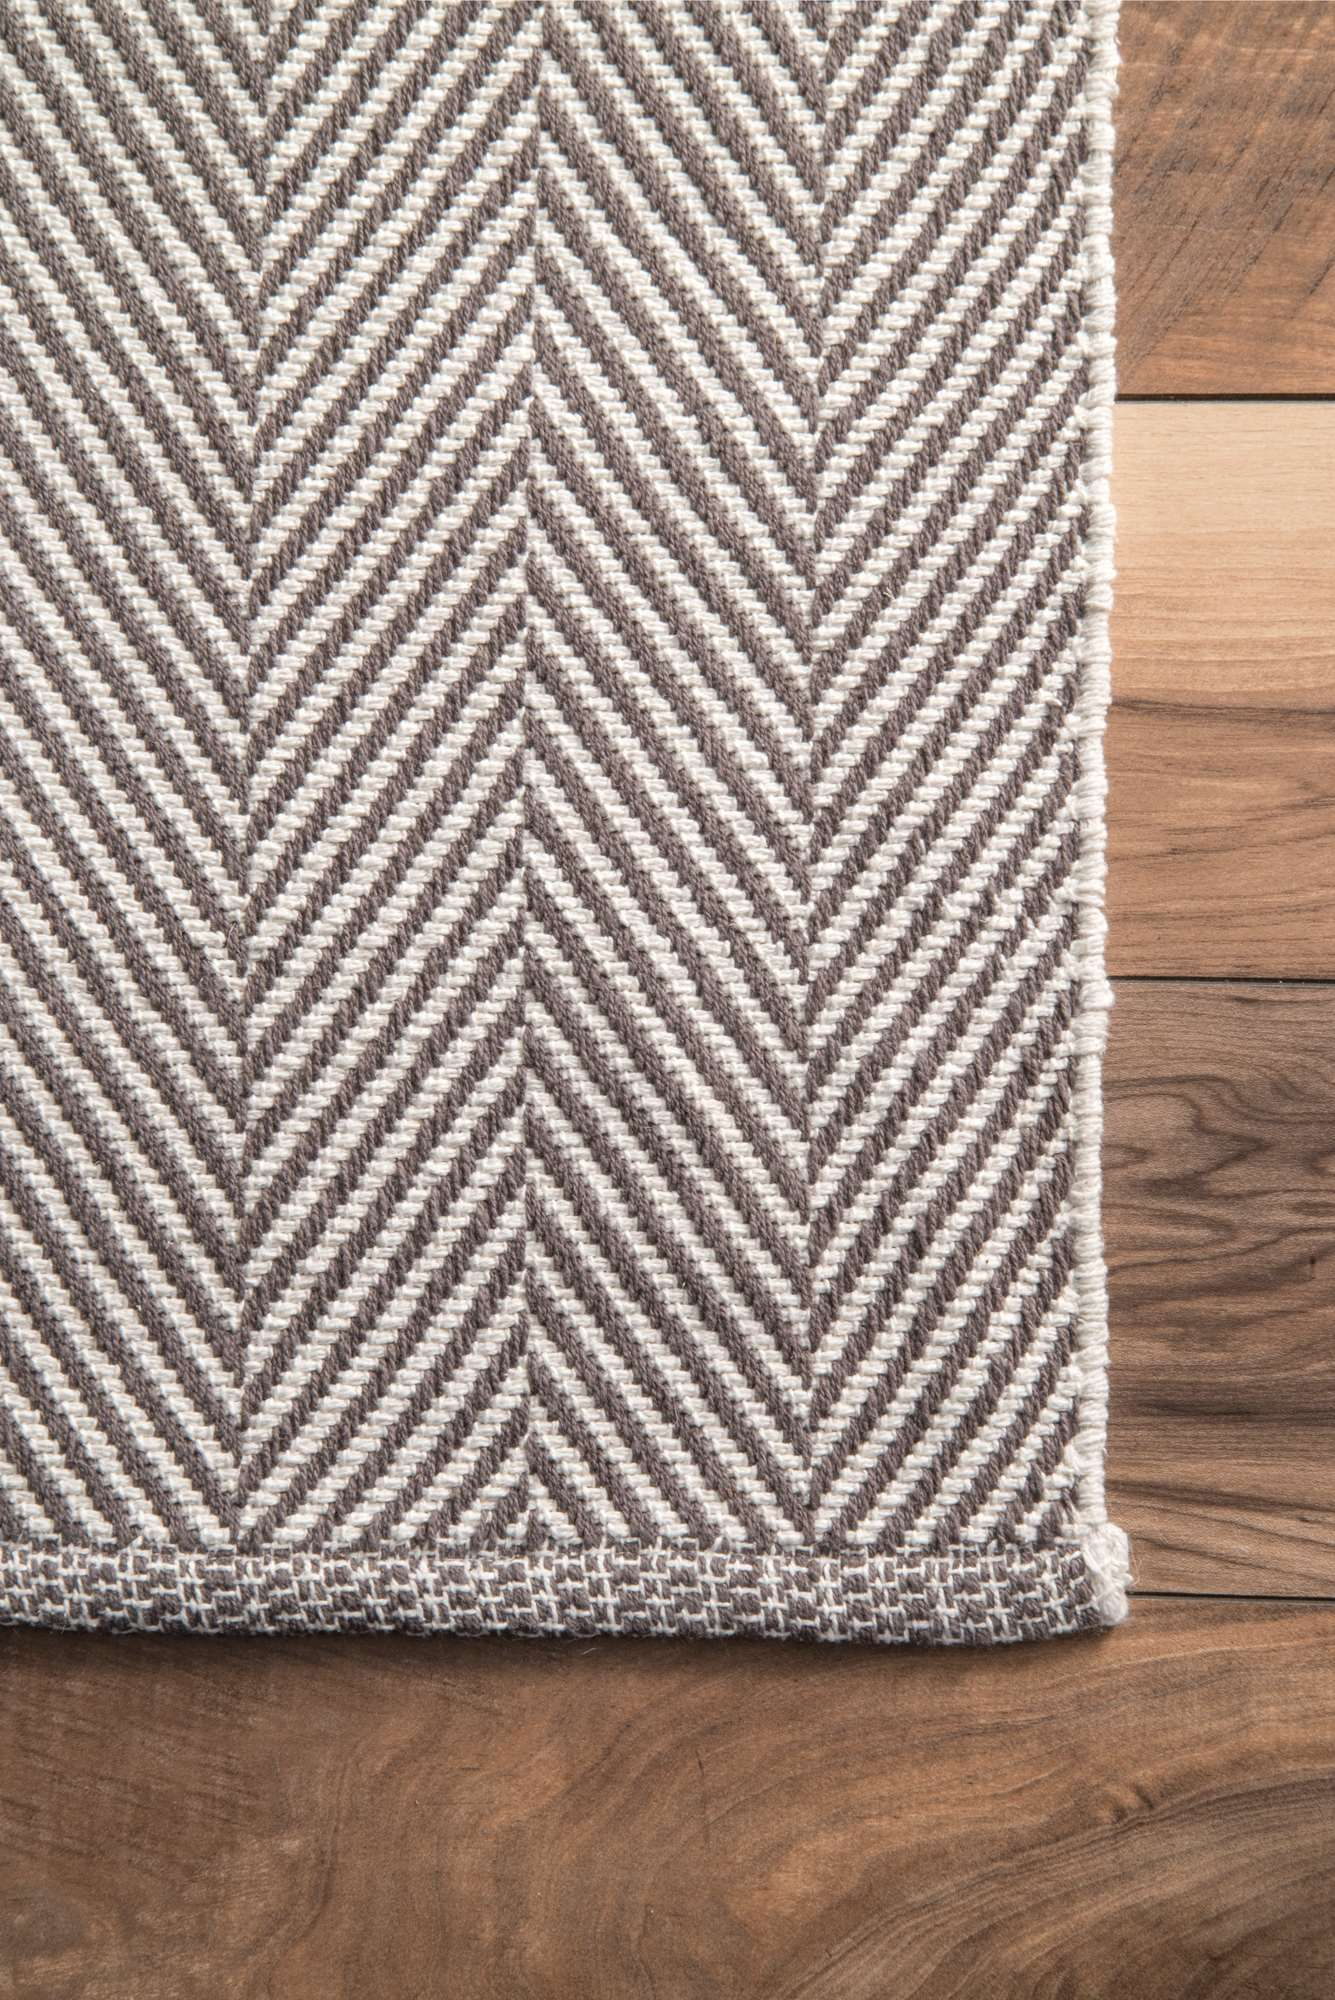 The No Pile Handloomed Flat Woven Rug Is Made Out Of Pure